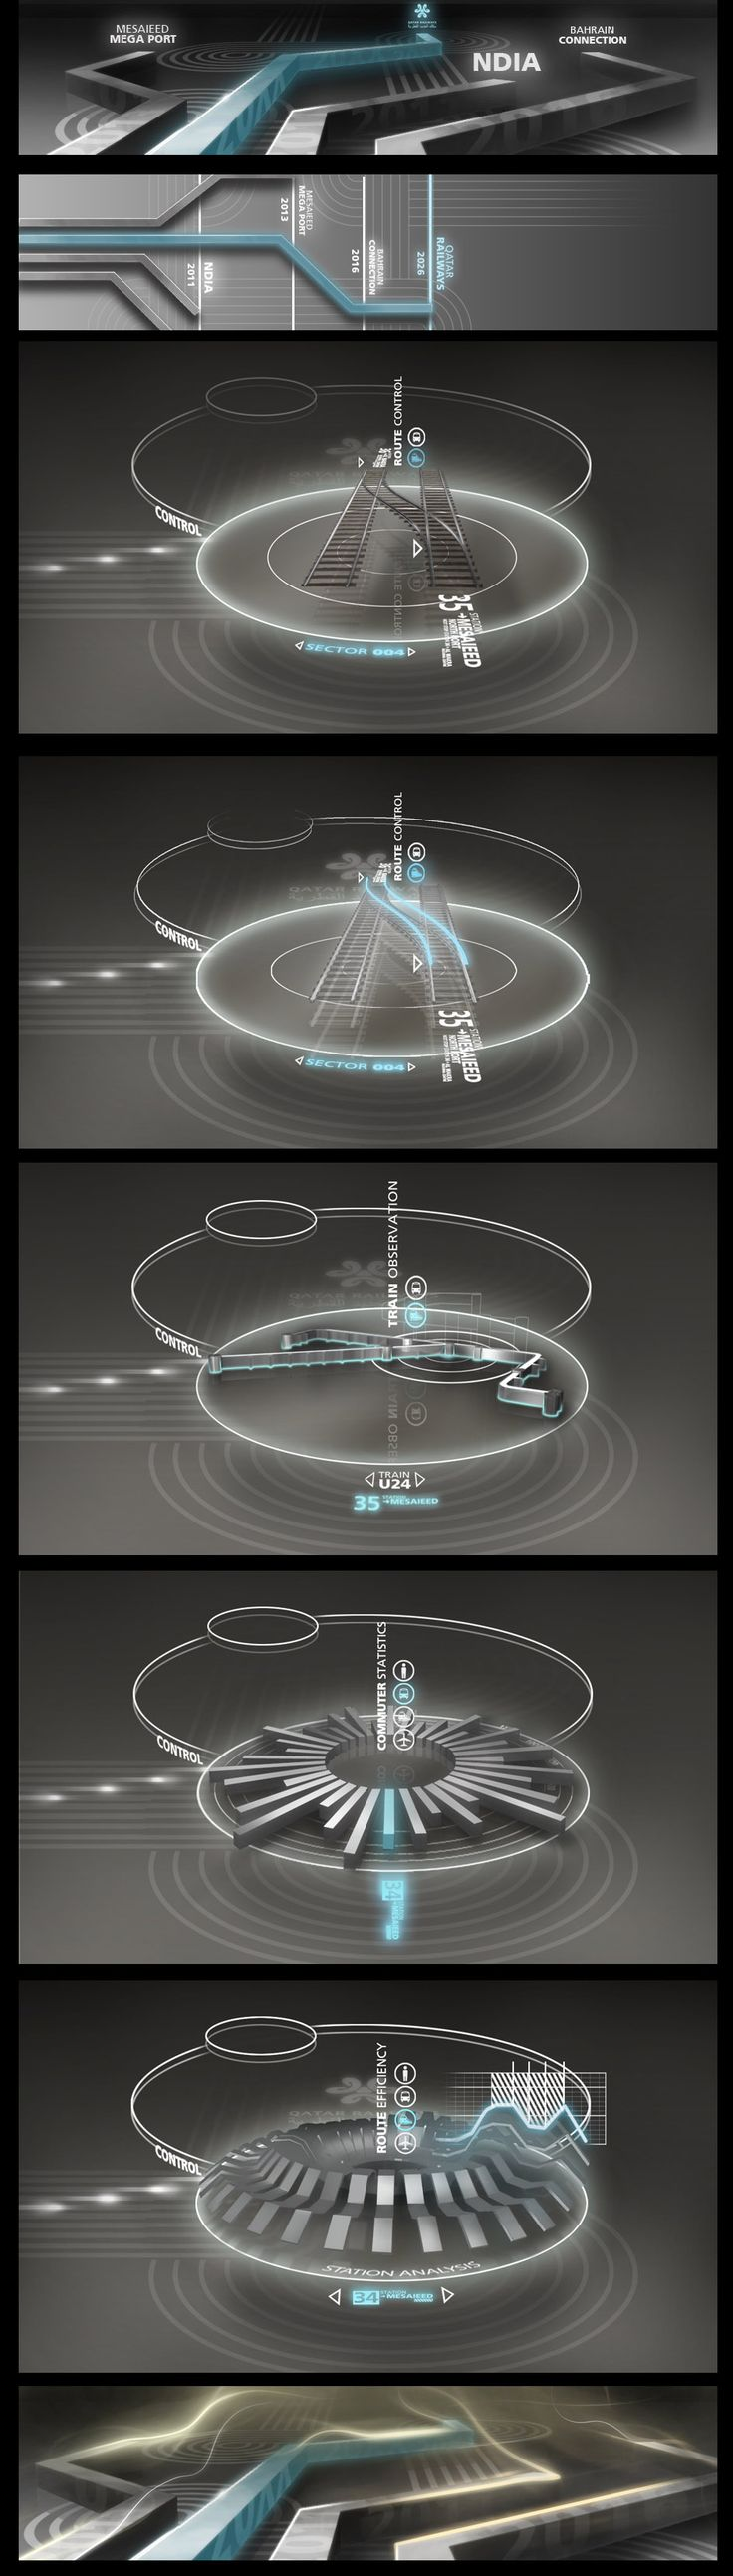 Touchscreen interface concept by stereolize-design